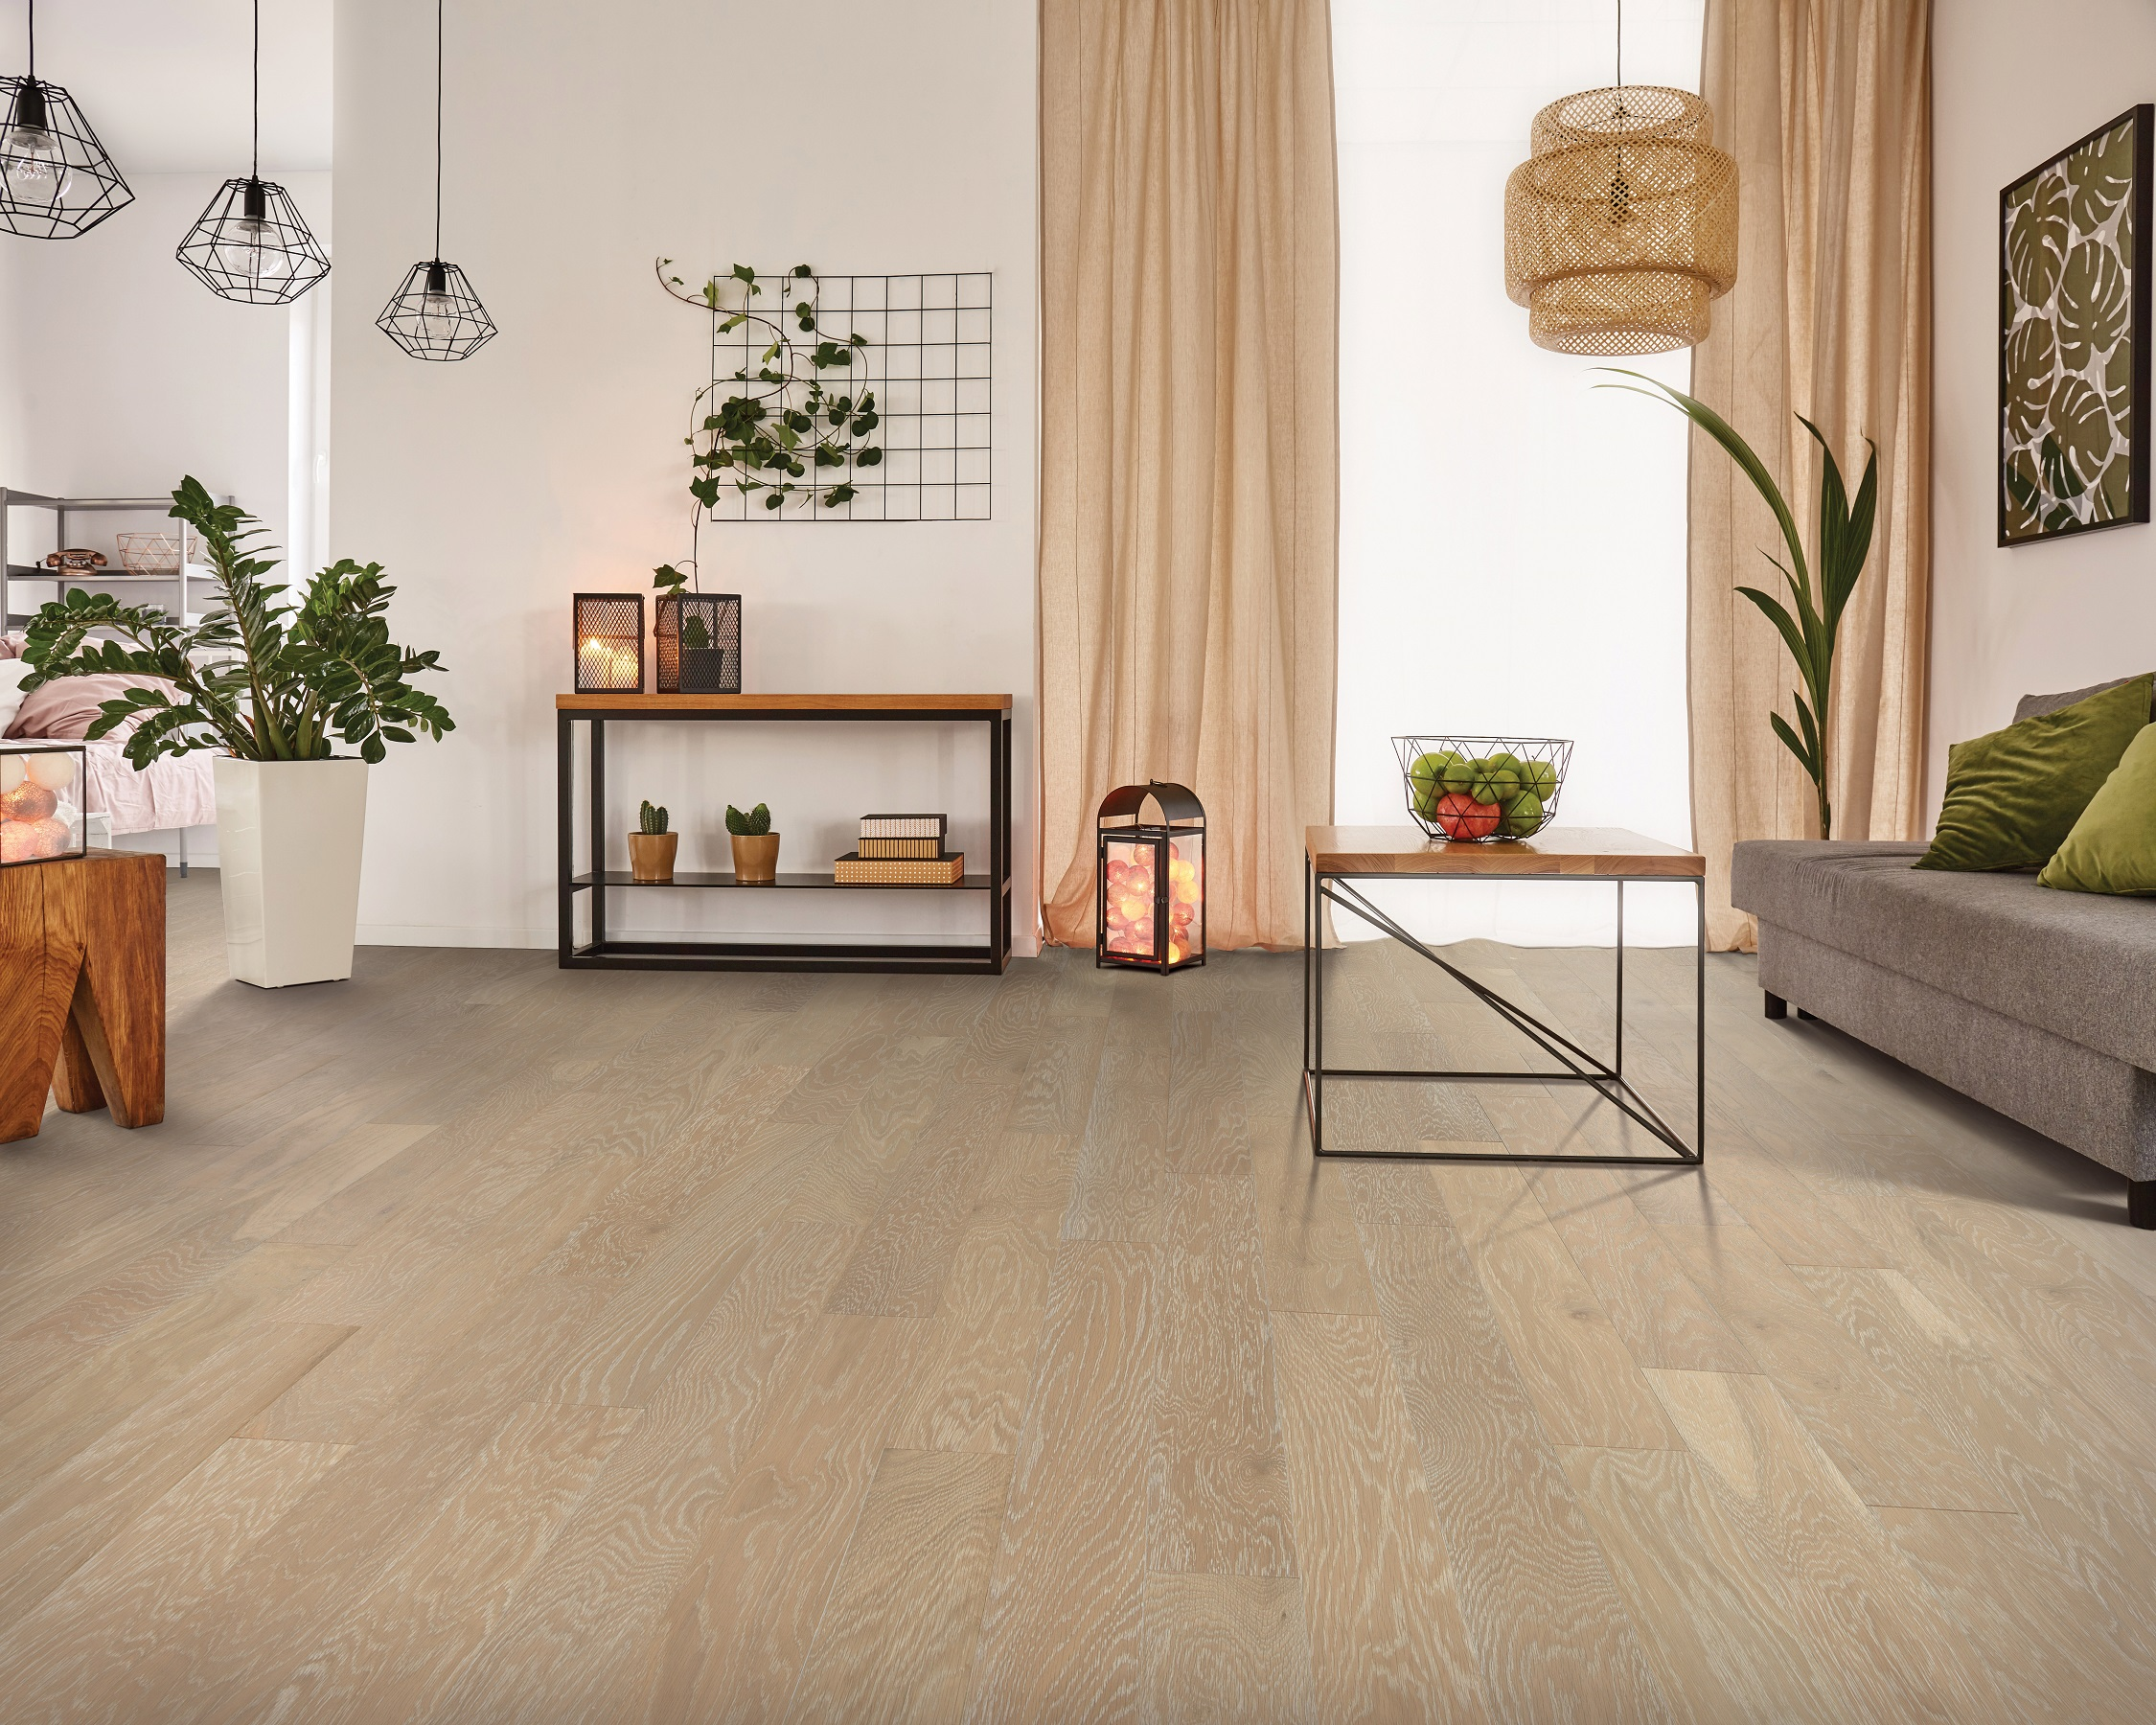 Hardwood flooring in a Fort Worth, TX home